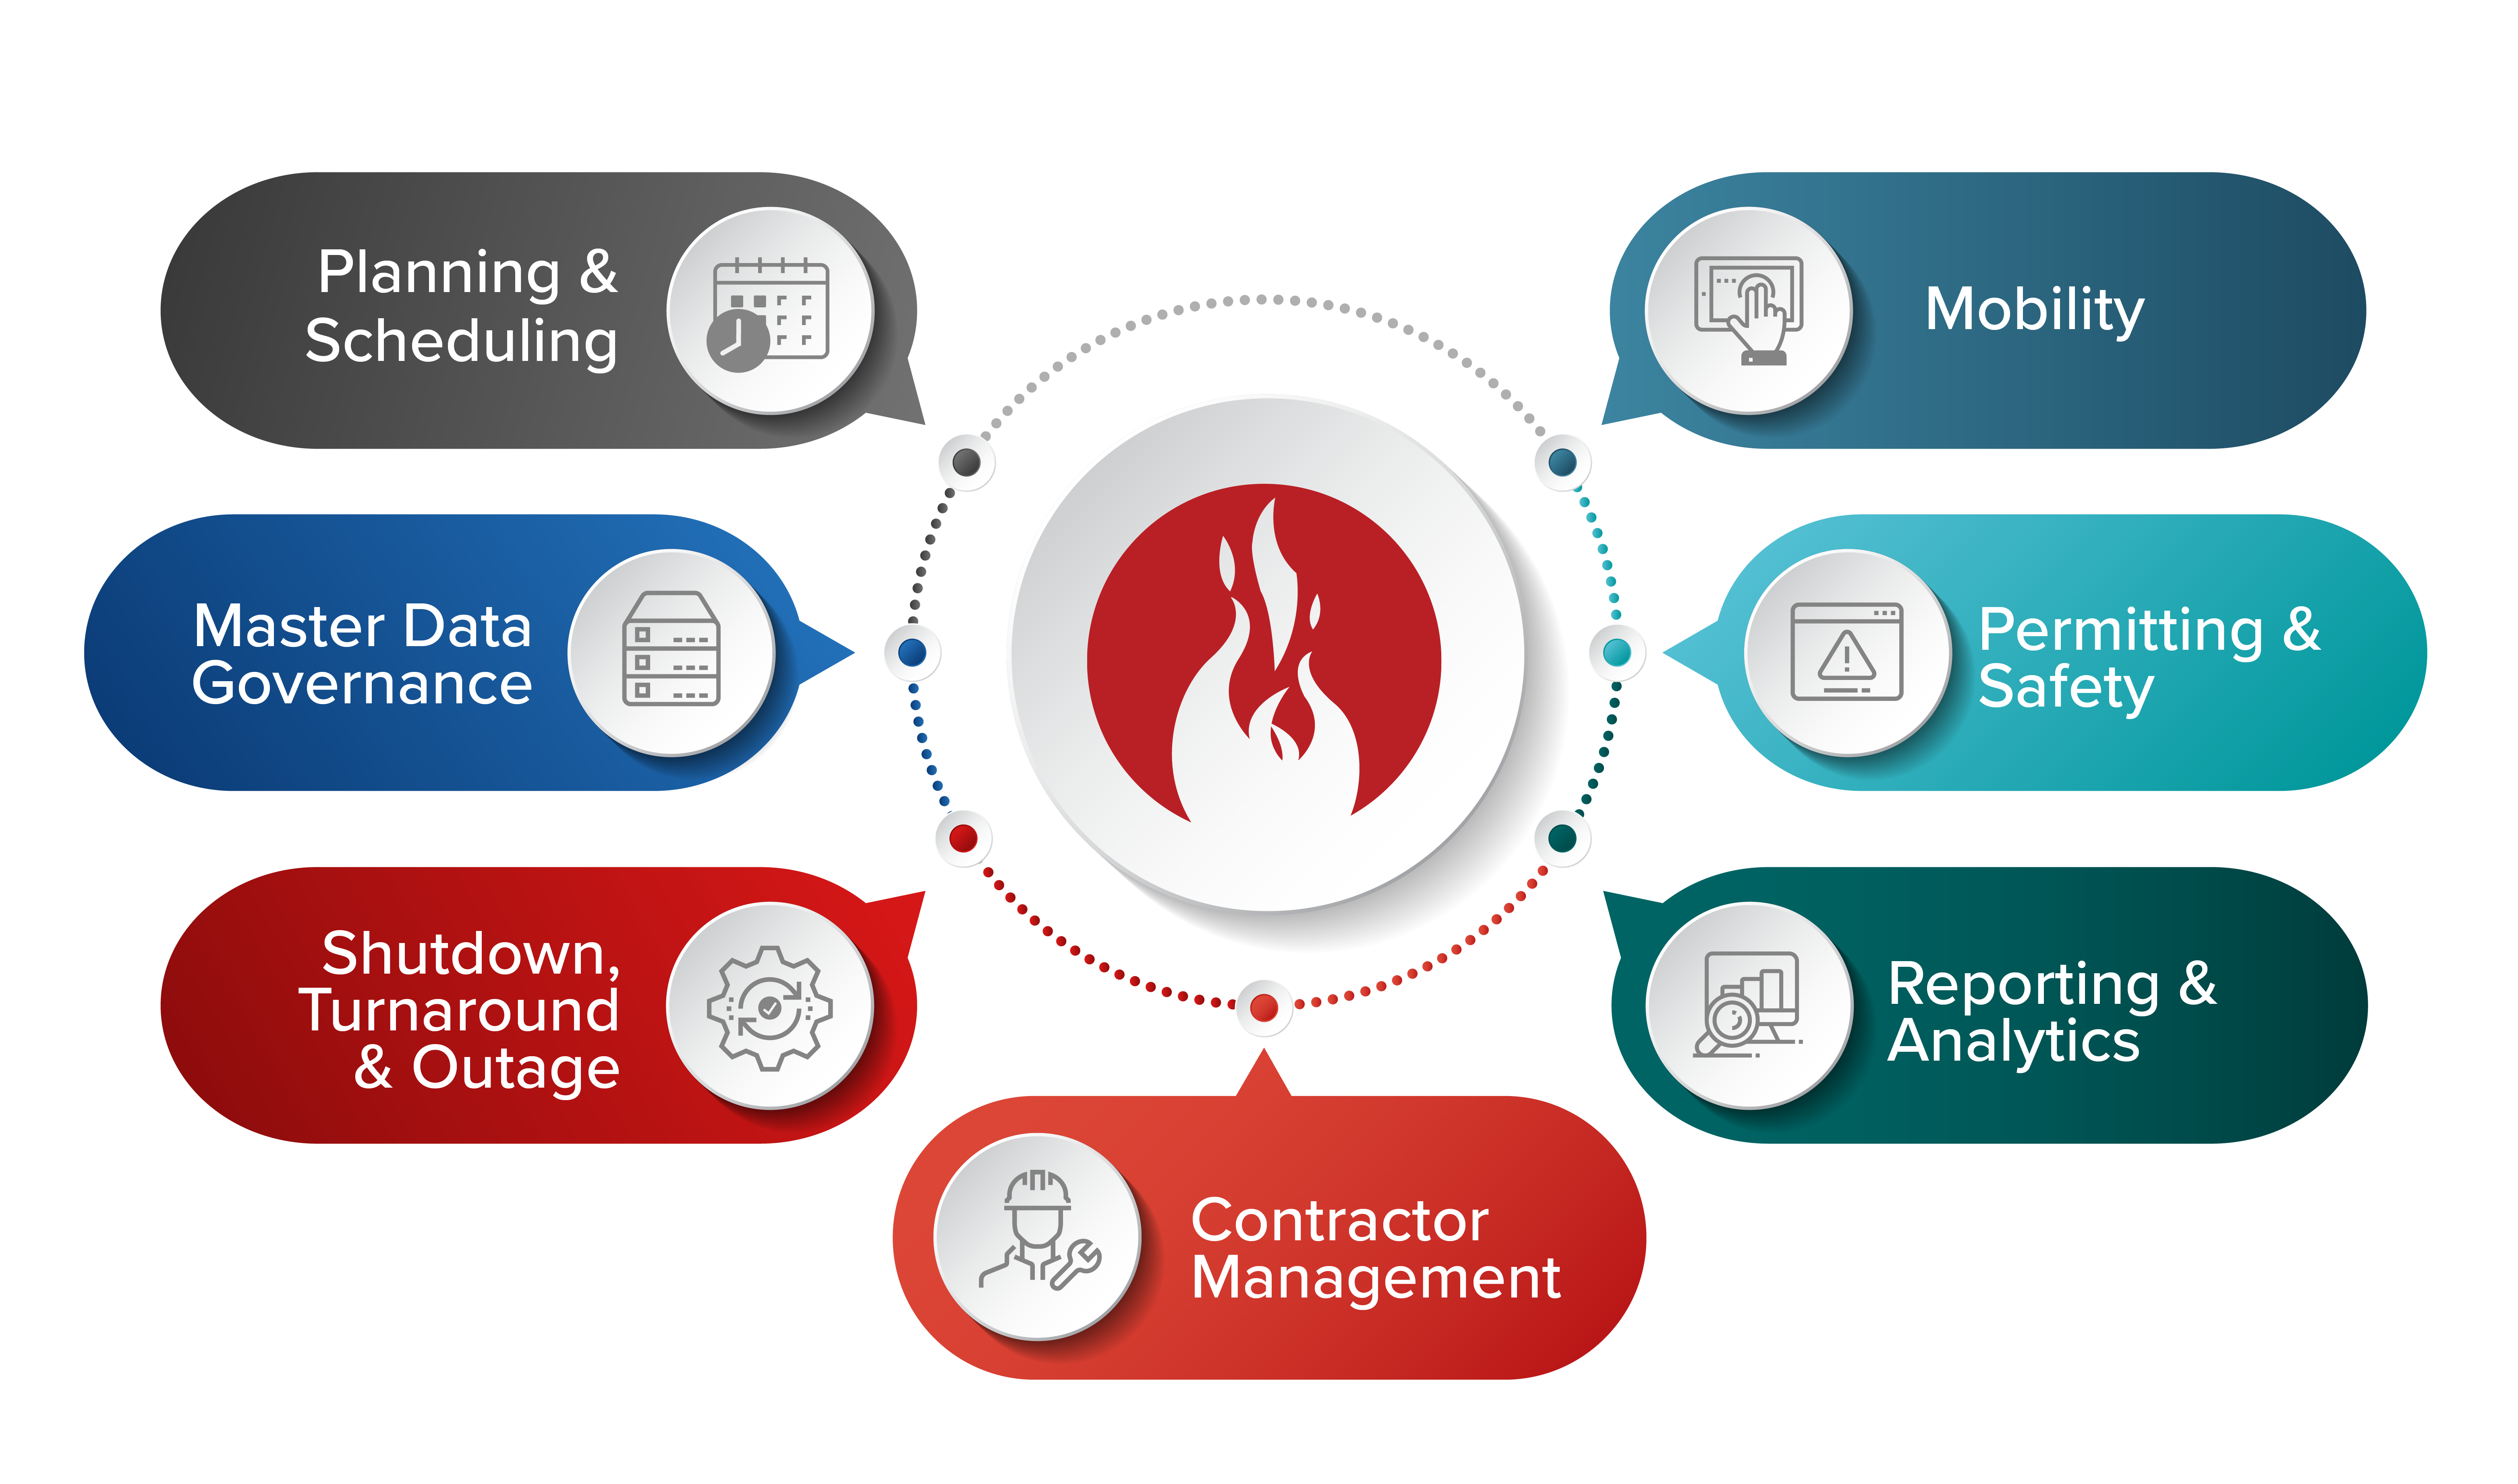 The Prometheus platform comprised of the following modules: Planning & Scheduling, Master Data Governance, Shutdown, Turnaround and Outage, Contractor Management, Reporting & Analytics, Permitting and Safety, and Mobility.